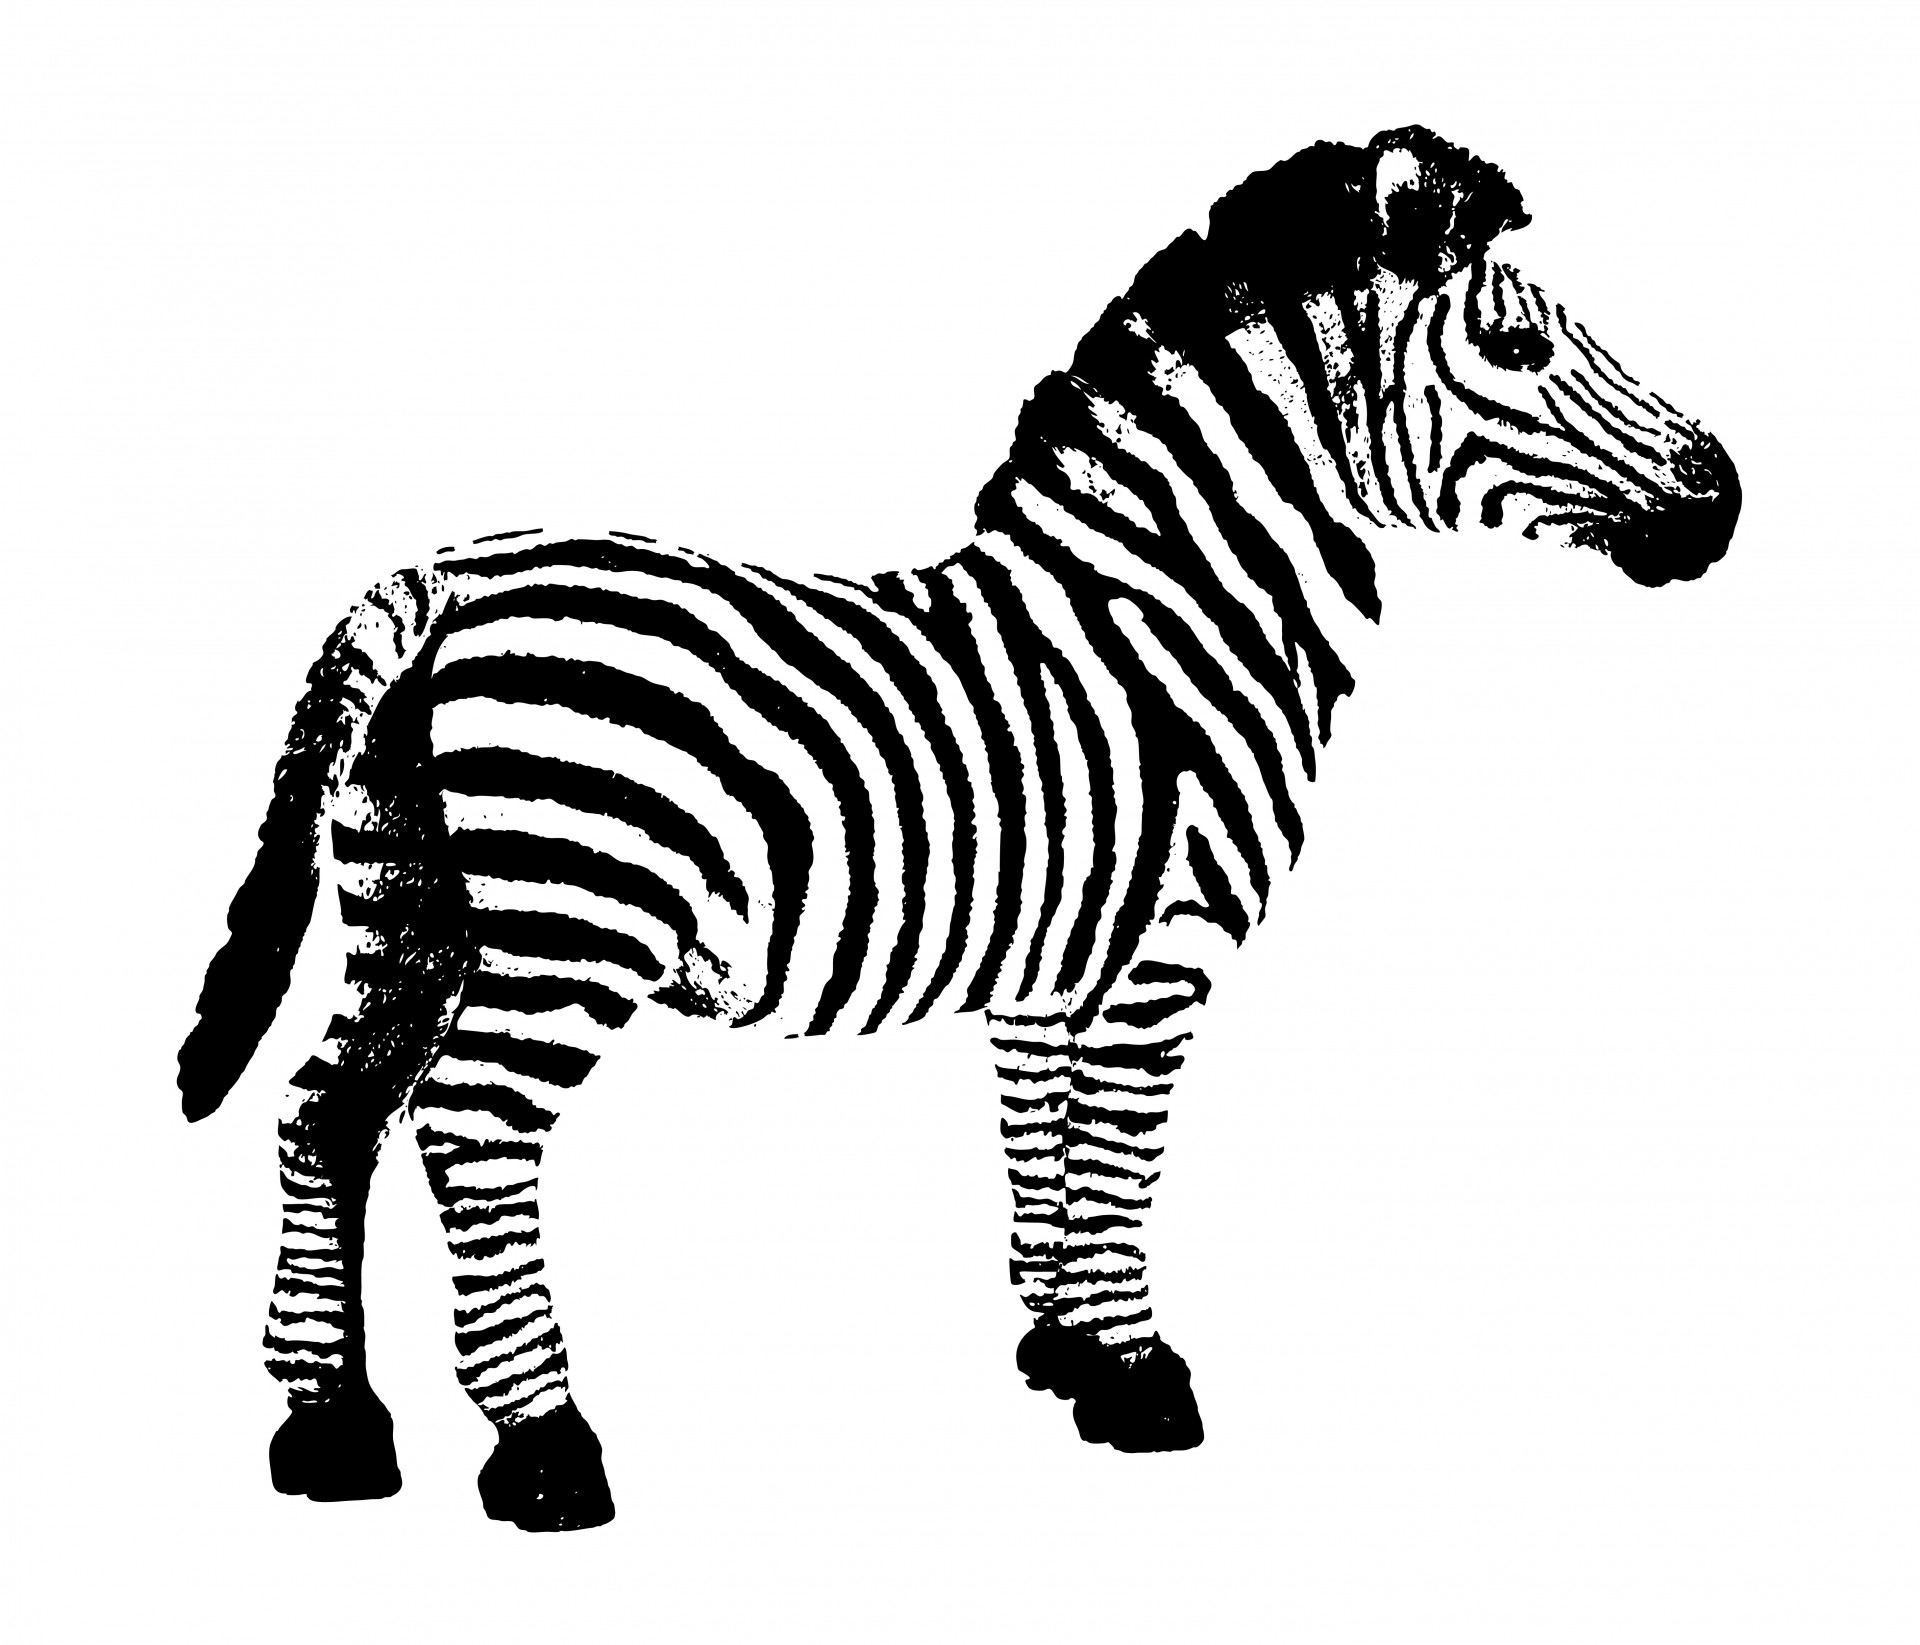 Zebra clipart black and white free clipart images 3.